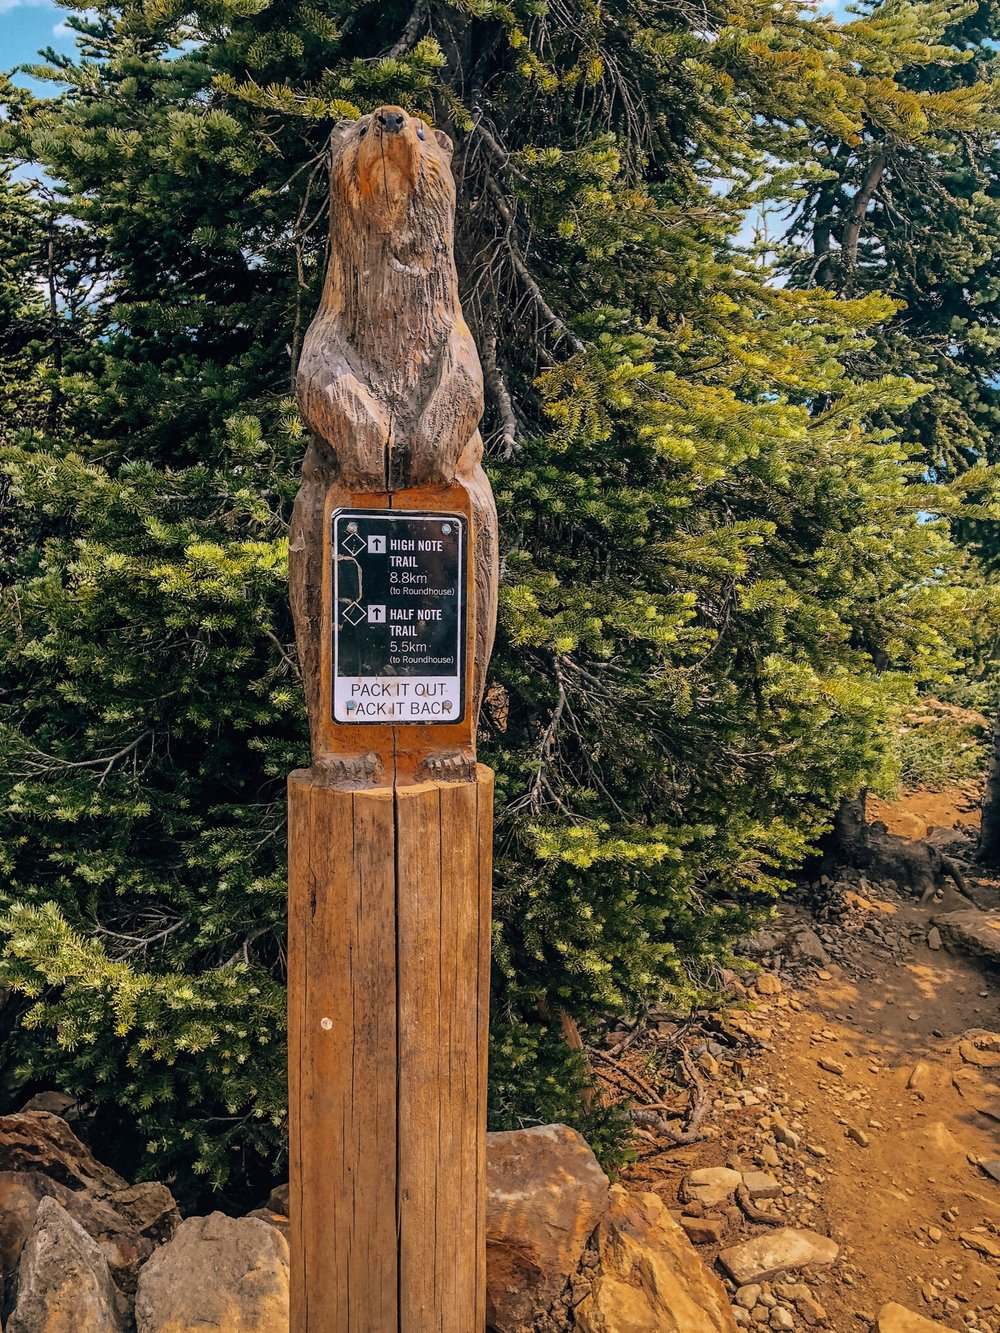 Signage for Half Note Trail and High Note Trail on Whistler Blackcomb